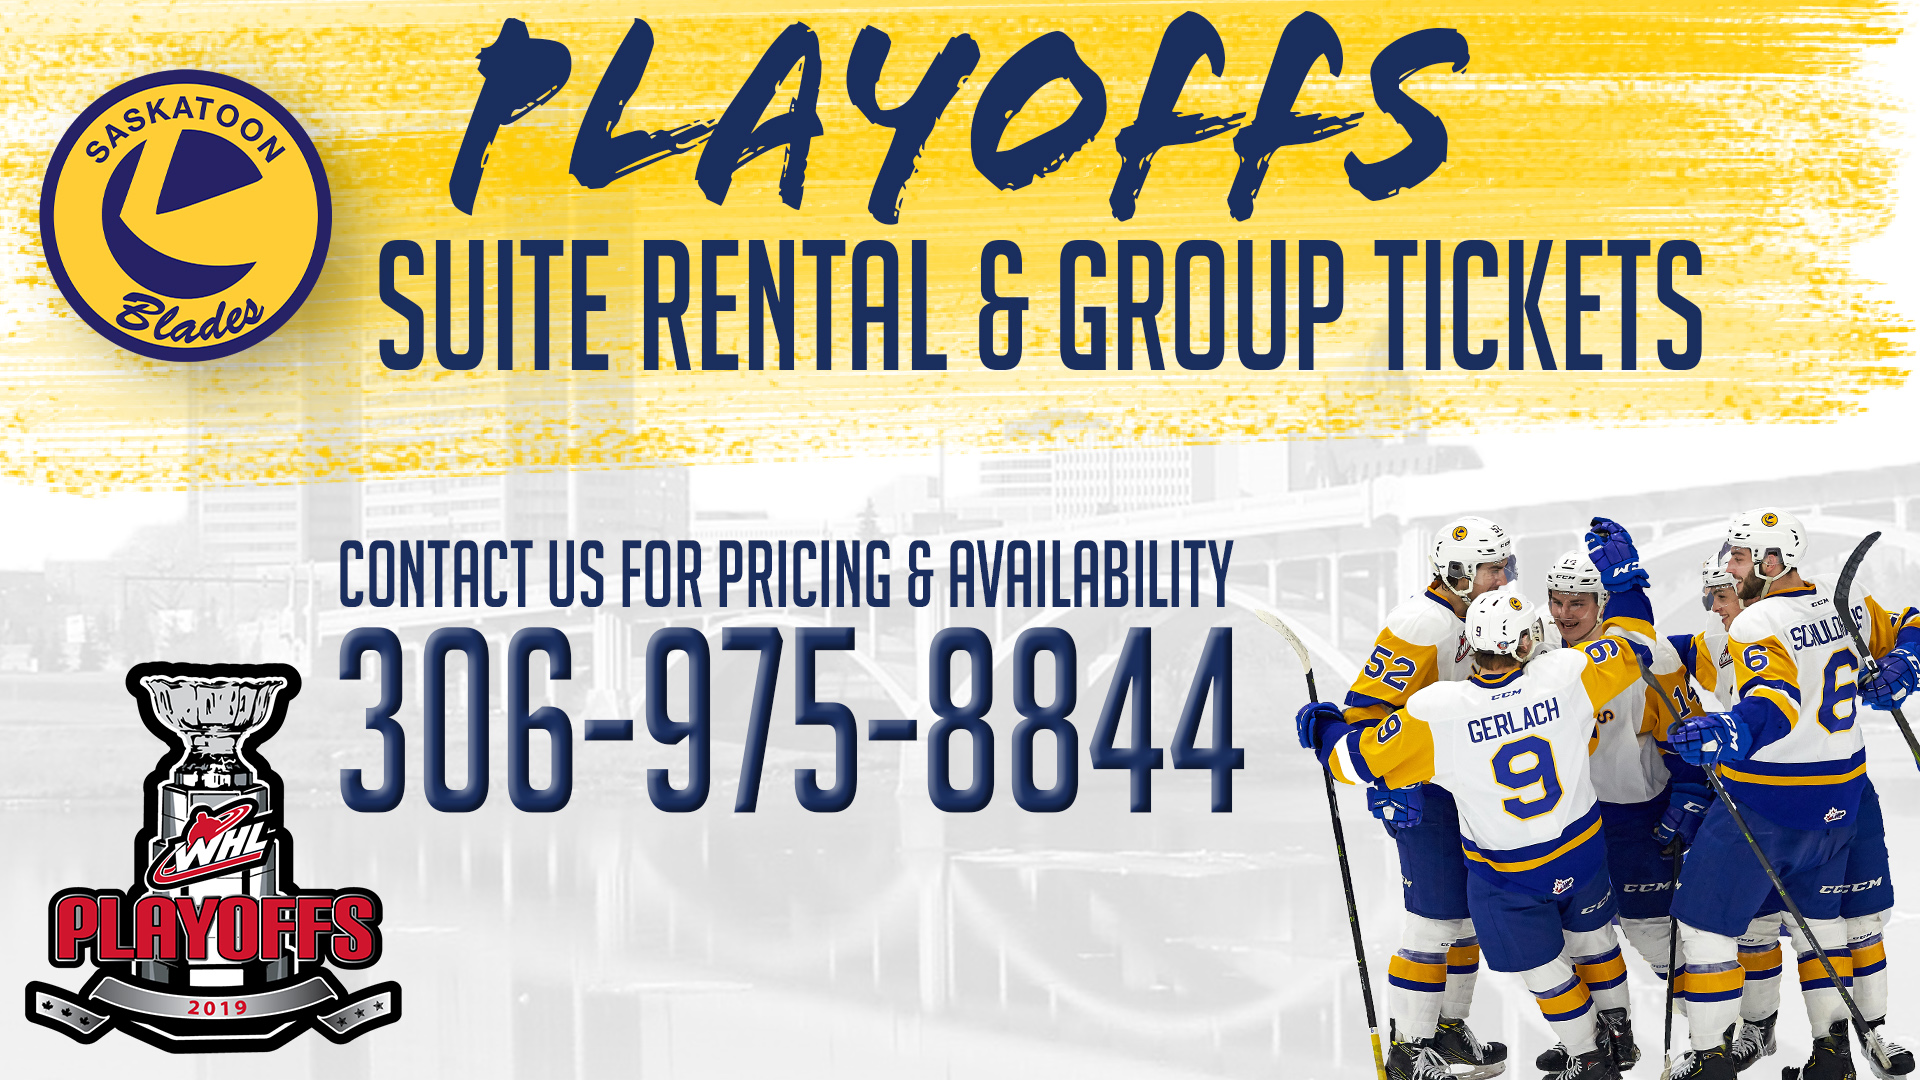 playoff suite and group